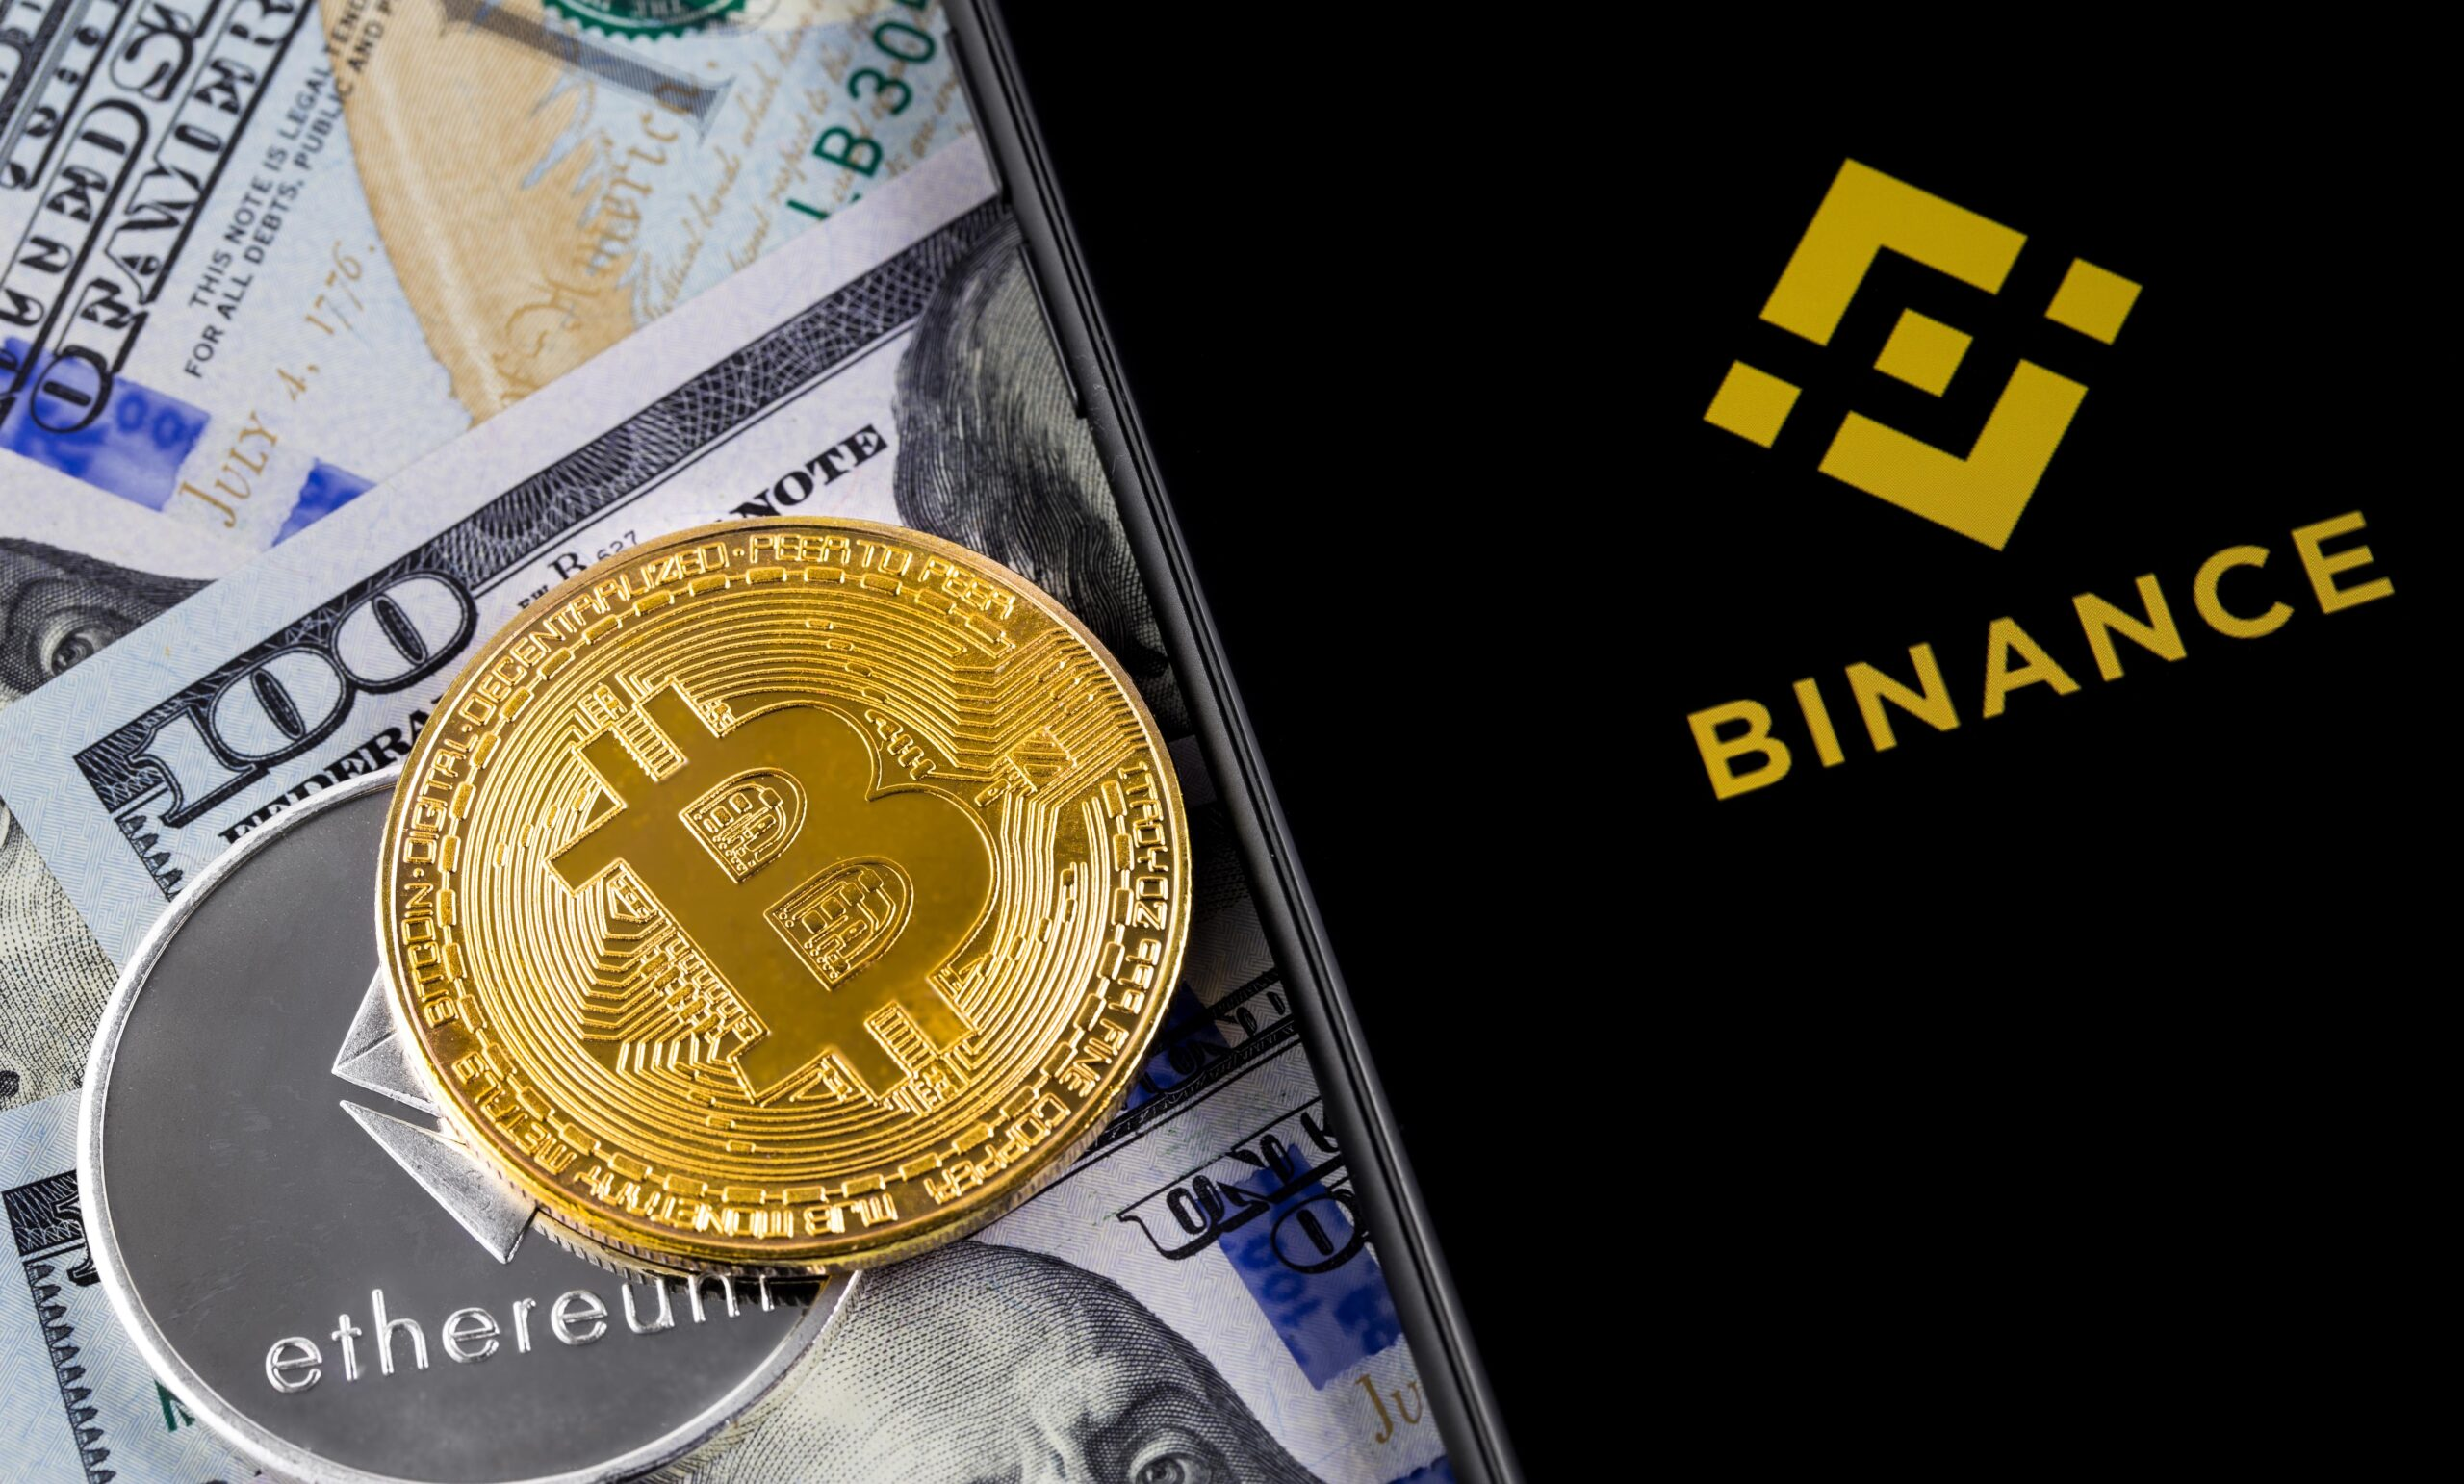 How to Buy Bitcoin with Binance